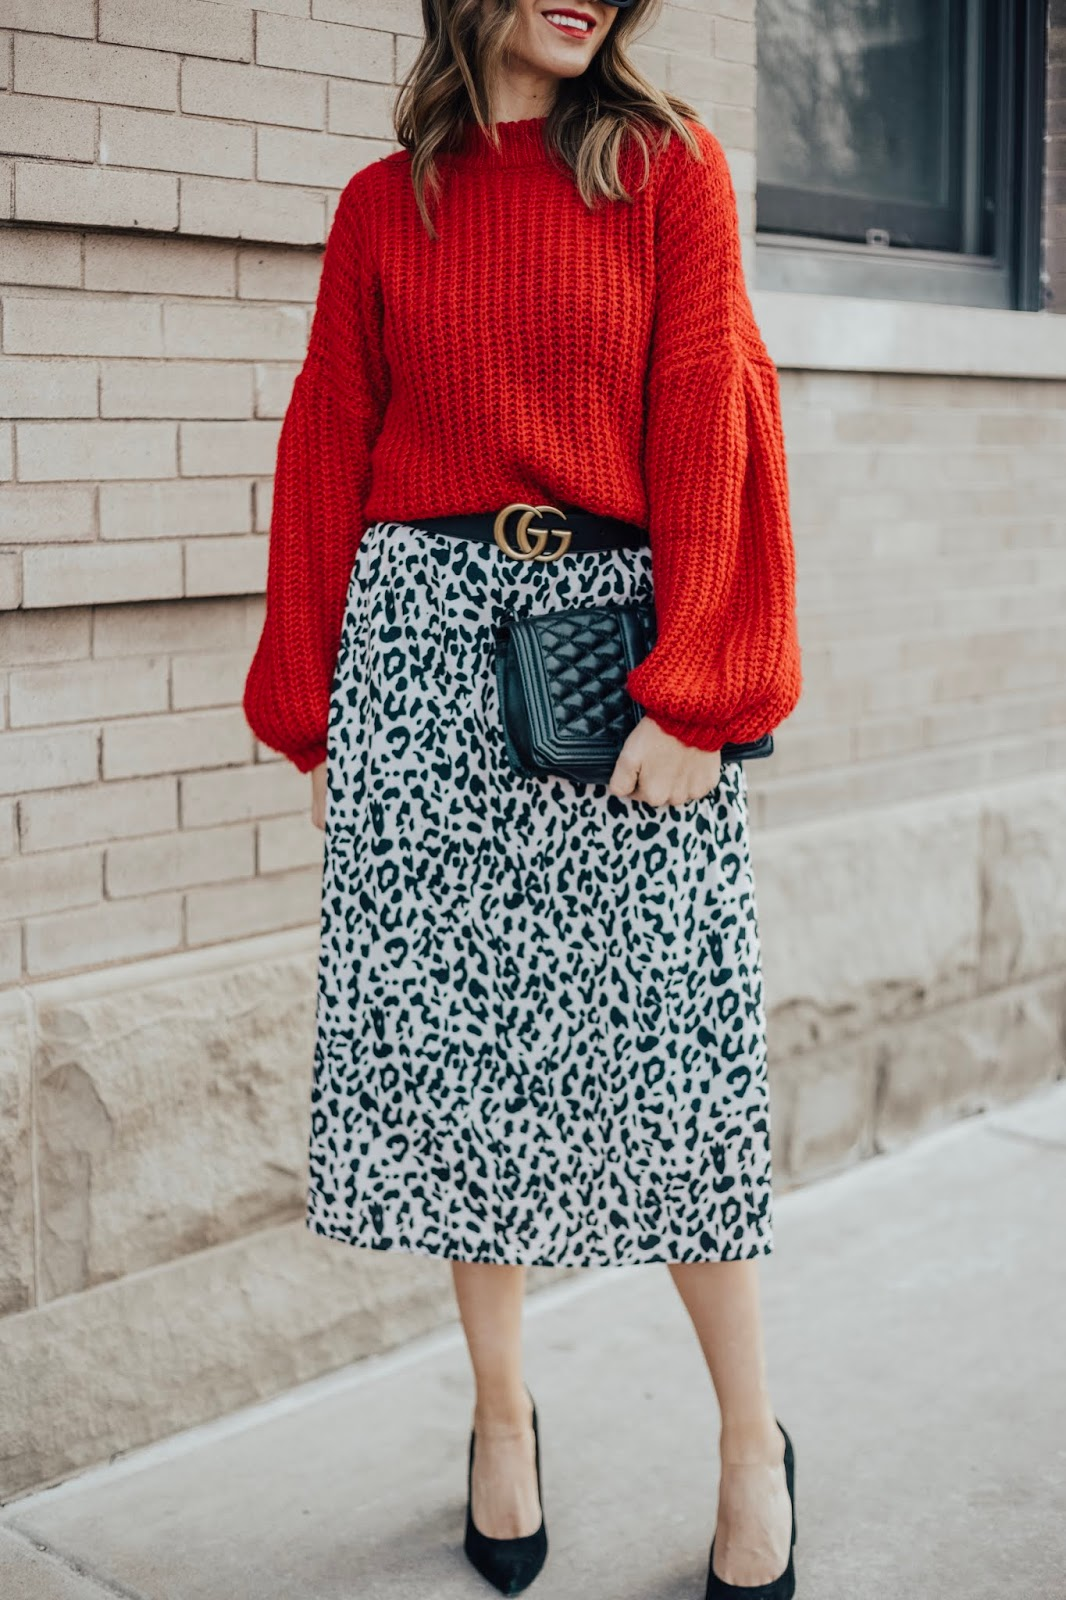 red sweater and leopard skirt